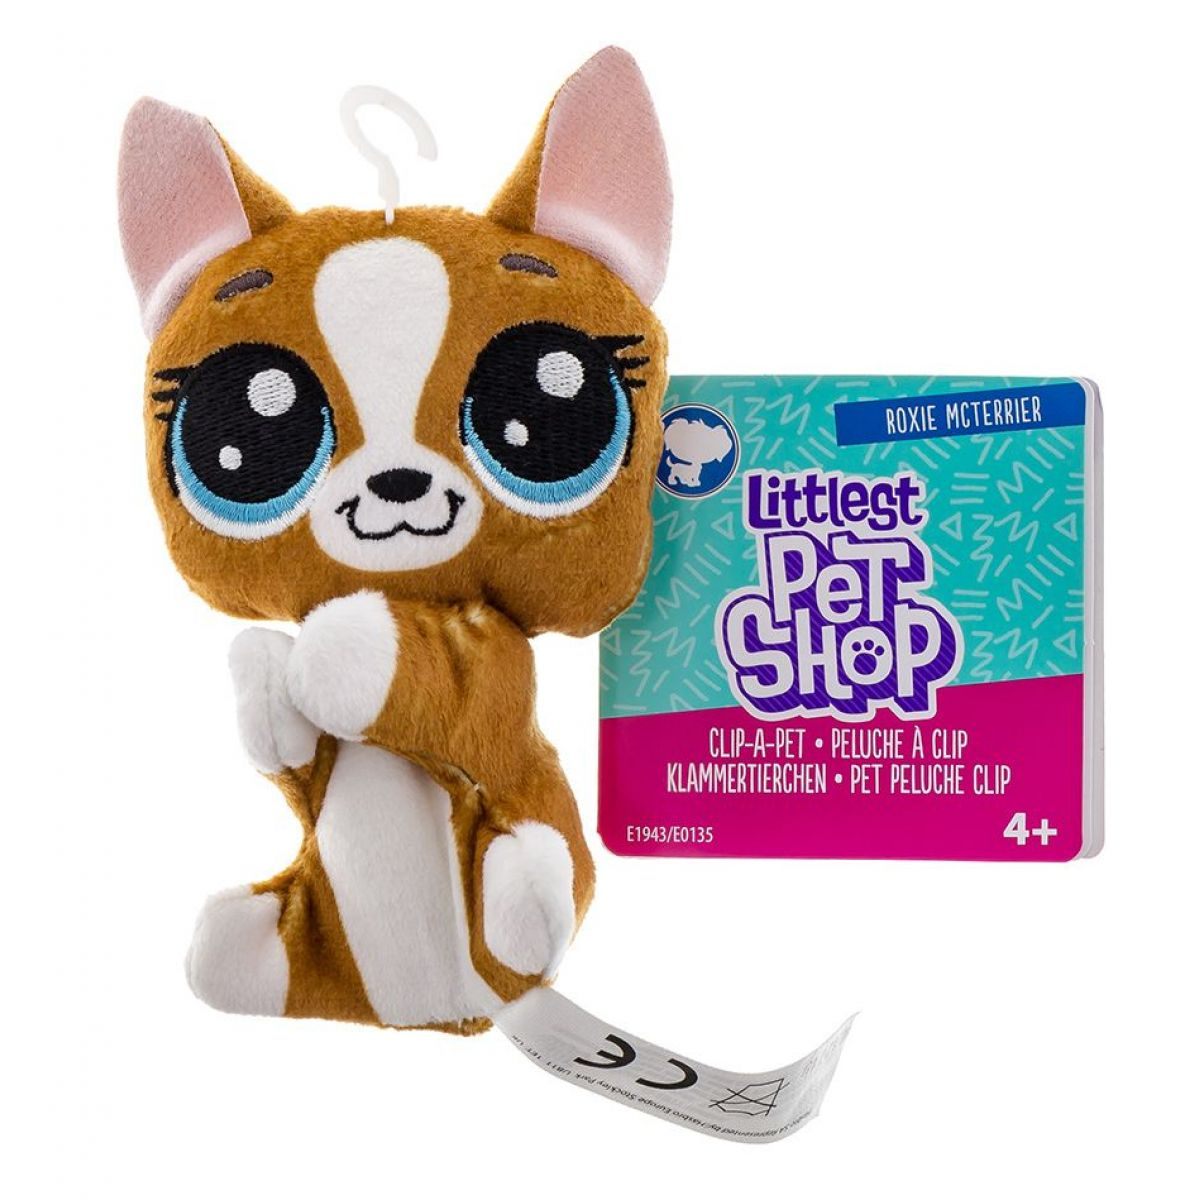 Littlest Pet Shop Plyšák s klipem Roxie Mcterrier